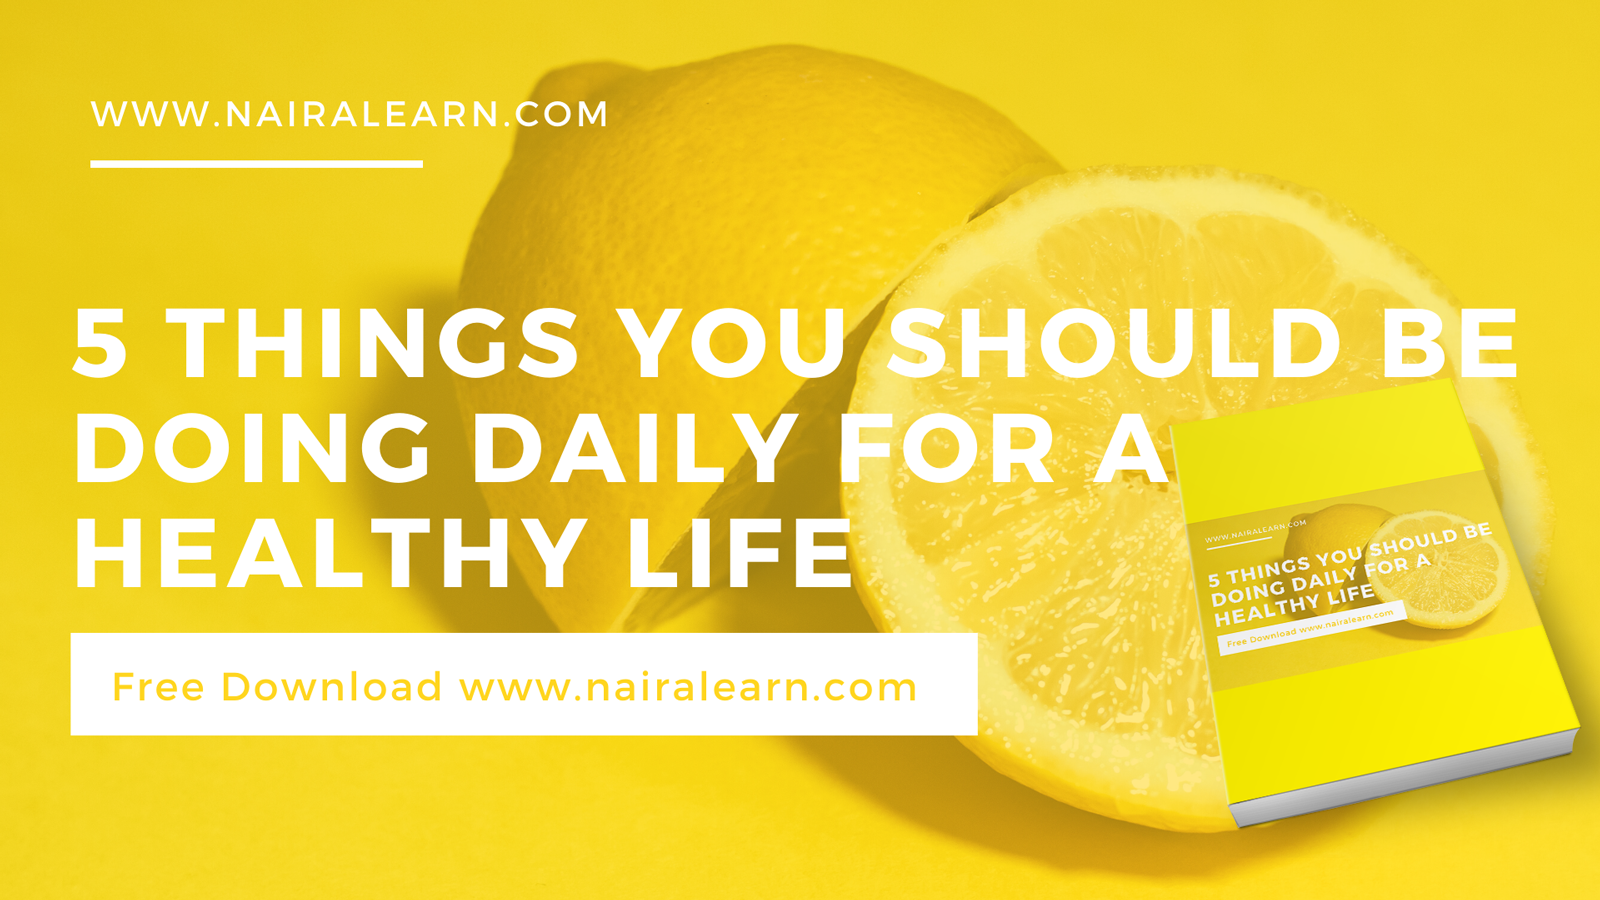 5 Things You Should Be Doing Daily For A Healthy Life, nairalearn